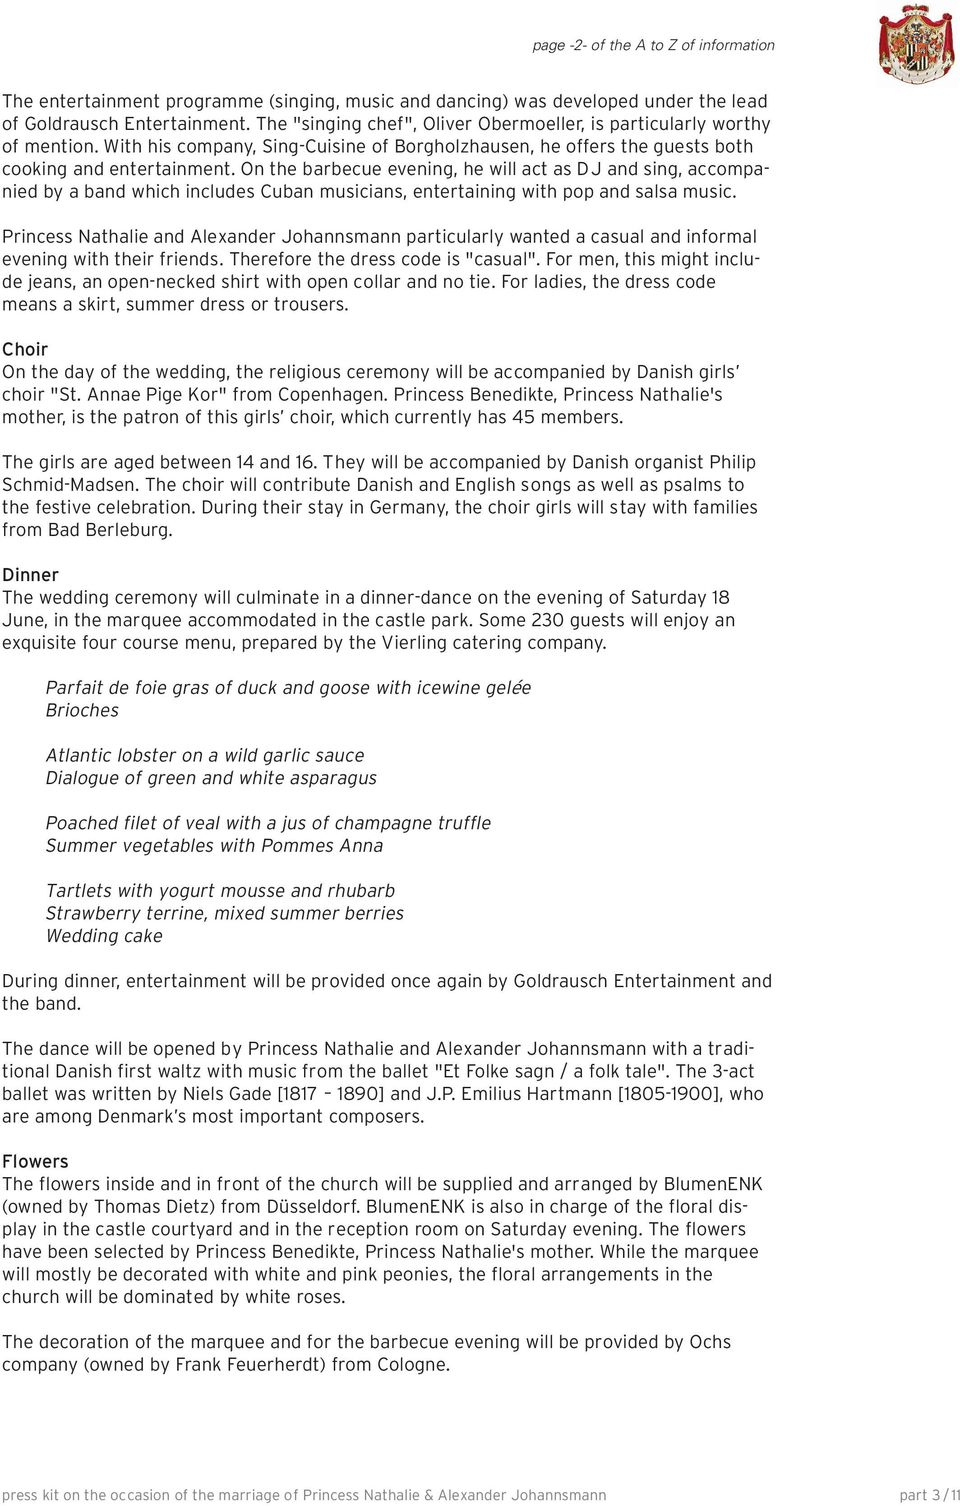 table of contents part content General map of media areas General ...